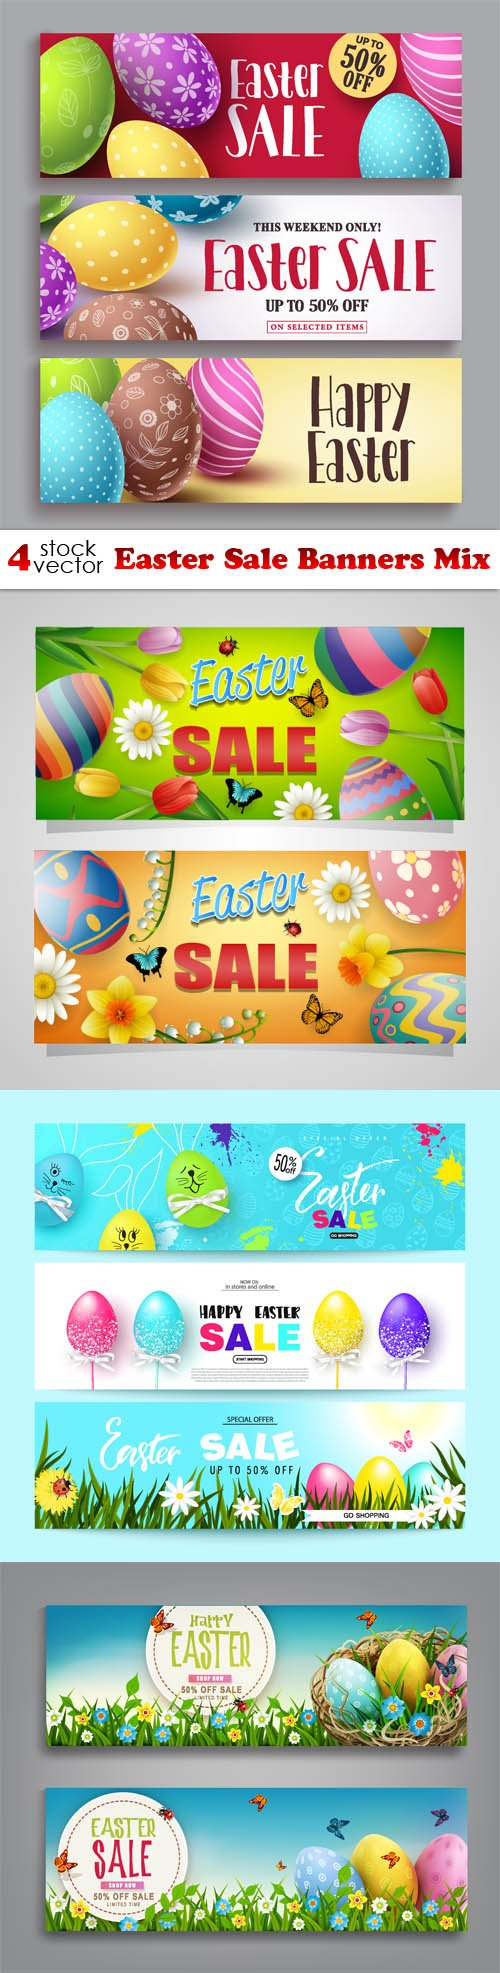 Vectors - Easter Sale Banners Mix